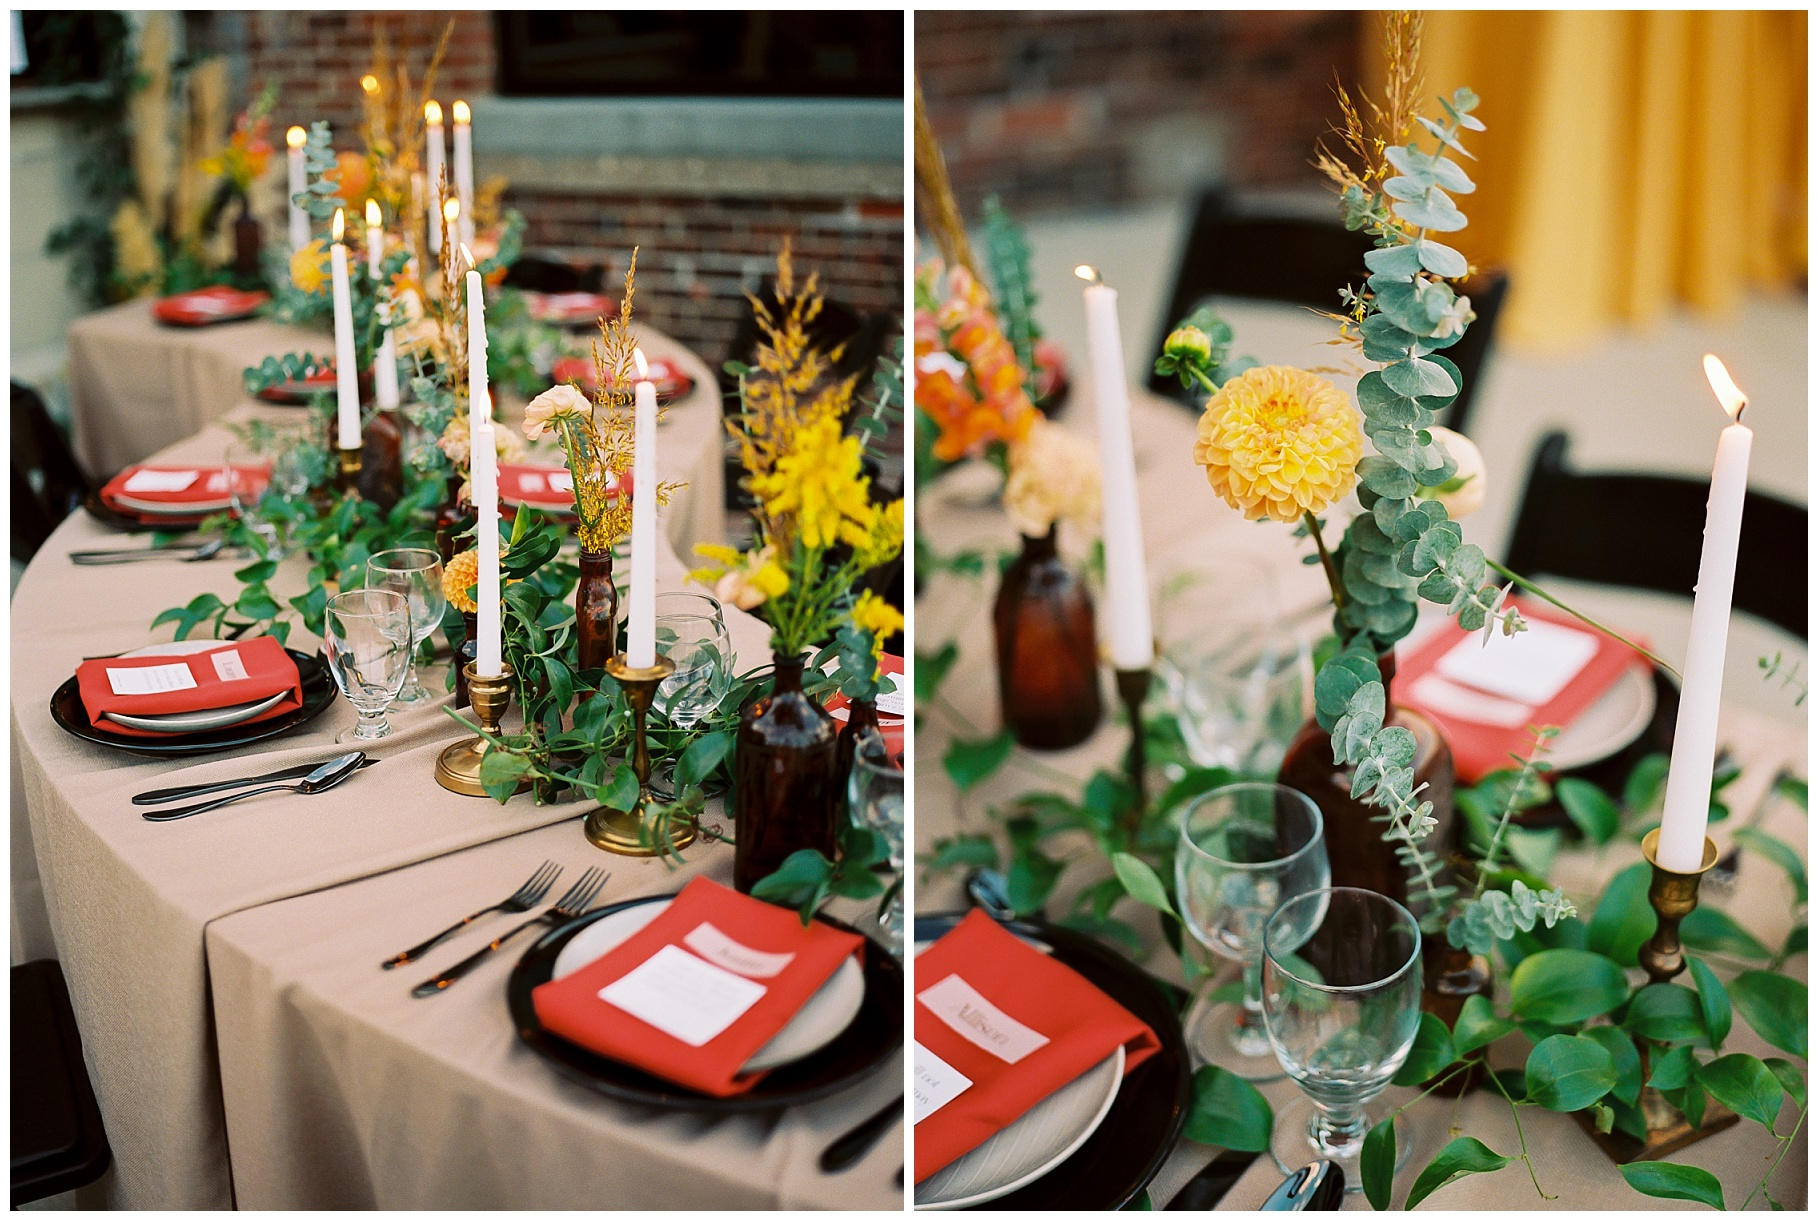 Urban Romance Wedding with Copper Accents at The Millbottom by Kelsi Kliethermes Photography Best Columbia Missouri Wedding Photographer_0057.jpg